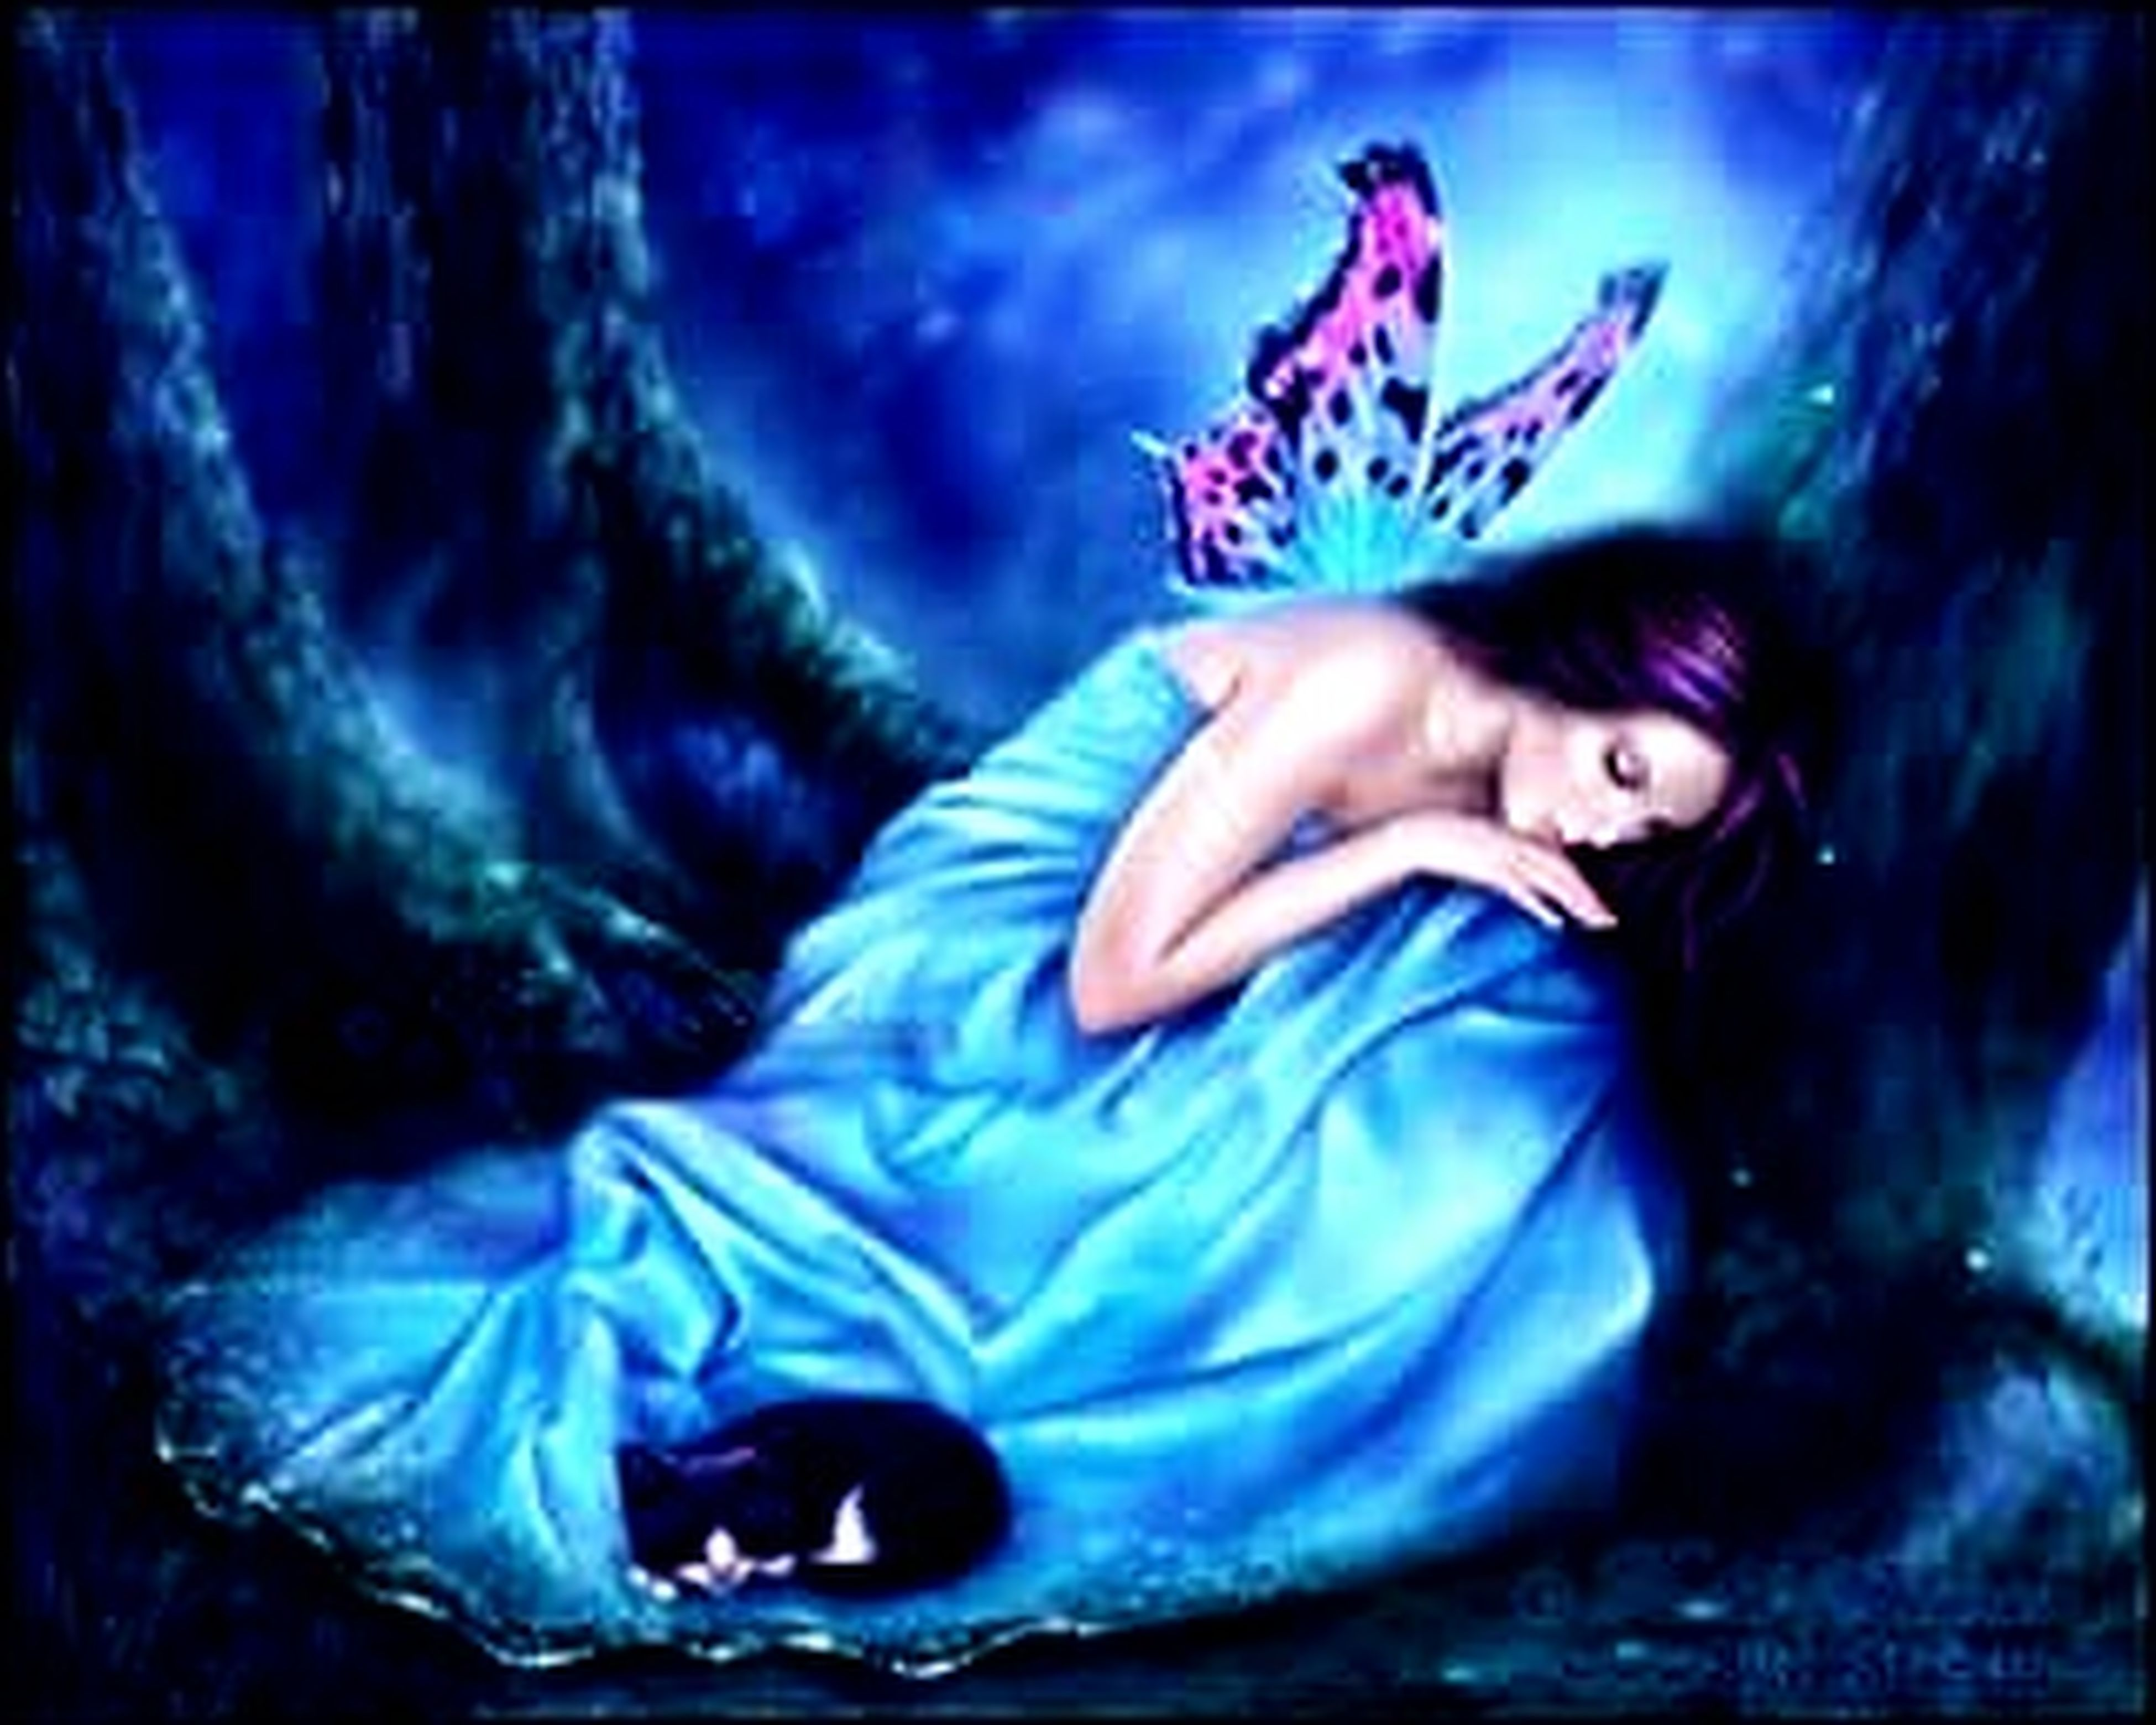 True Beauty True To Fantasy FANTASYWORLD Fantabulous  My Passion AND Me And My Fantasy World